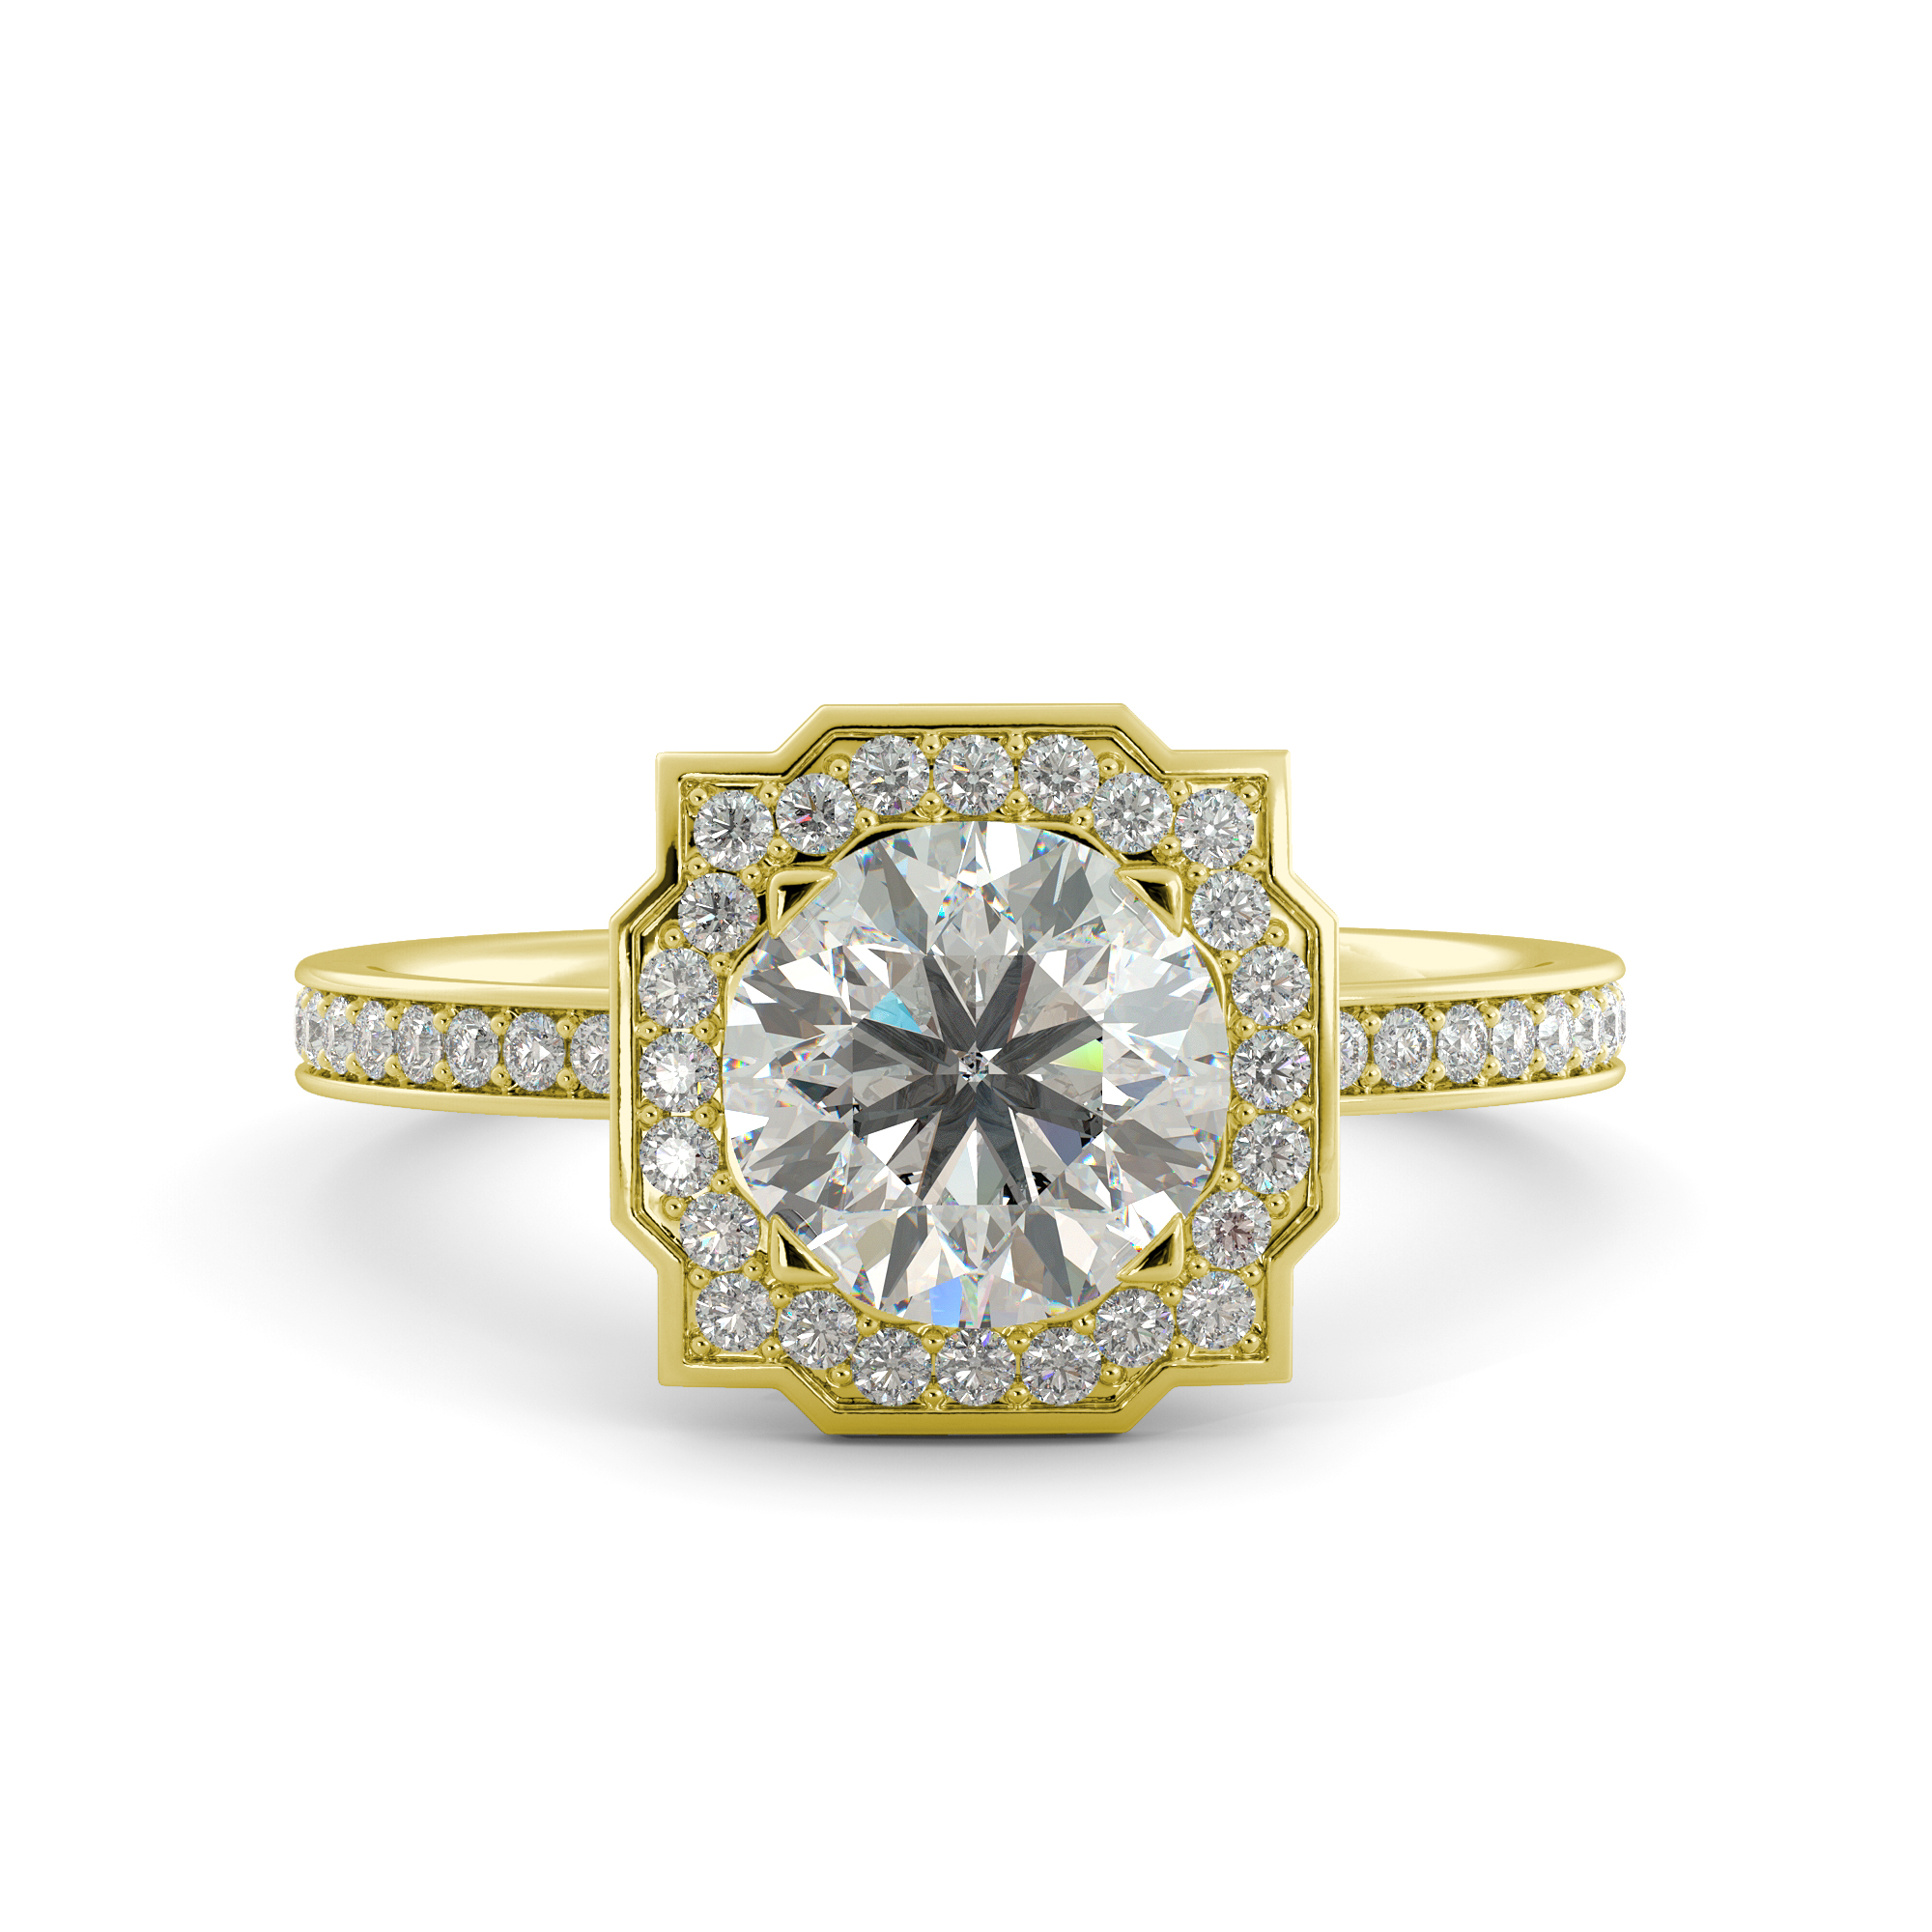 3.10 ct C&C Brilliant Moissanite Round Cut & Diamond Engagement Ring 14kYellowGold by J&H Jewelers